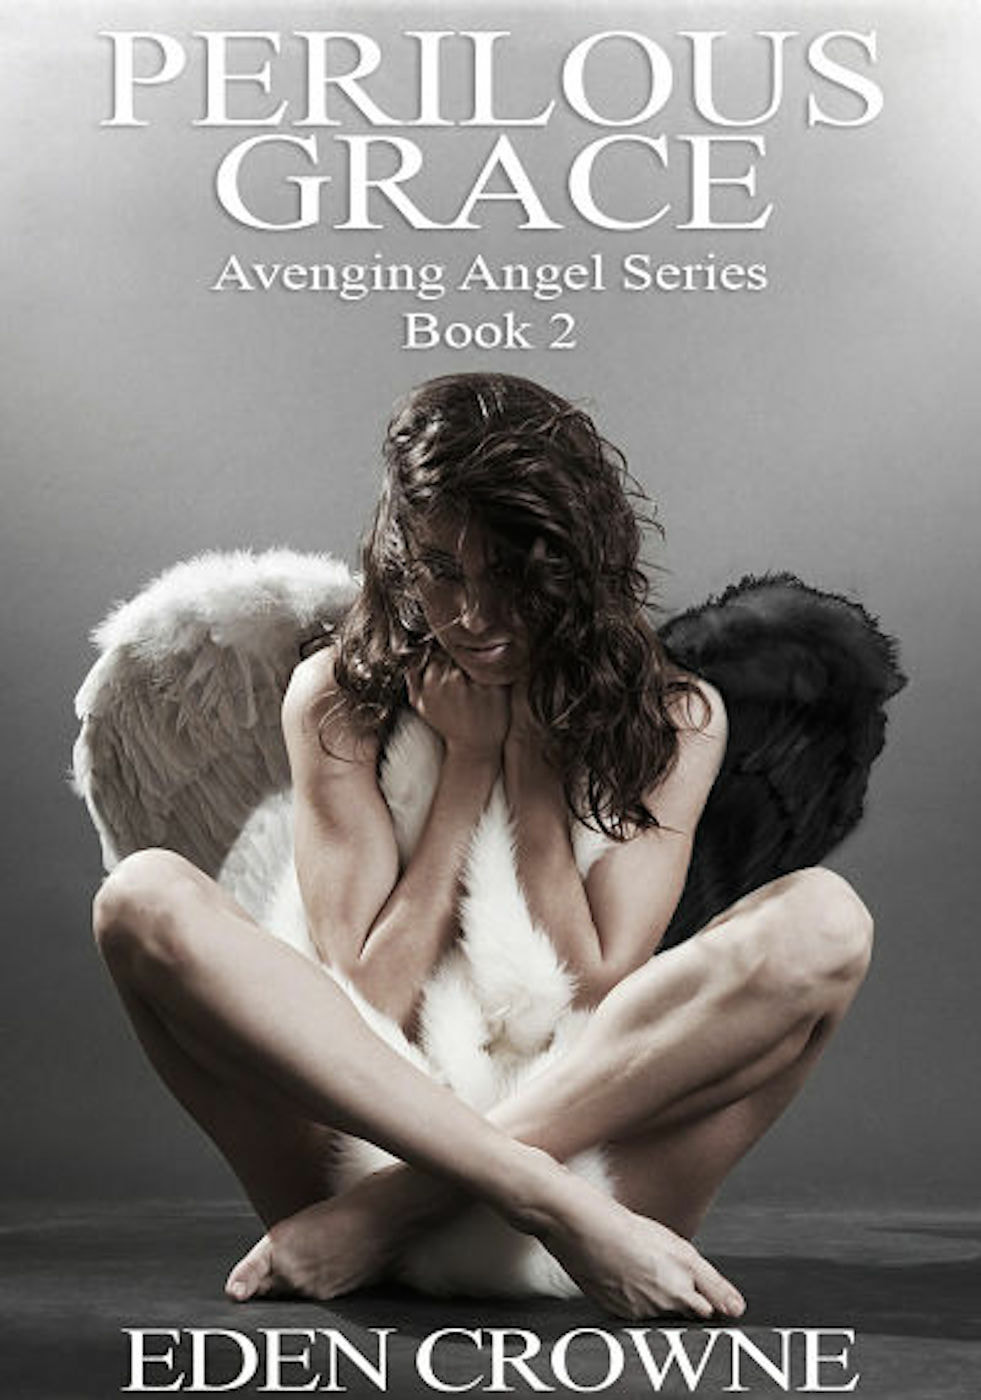 Perilous Grave, Avenging Angel Series Book 2, by Eden Crowne